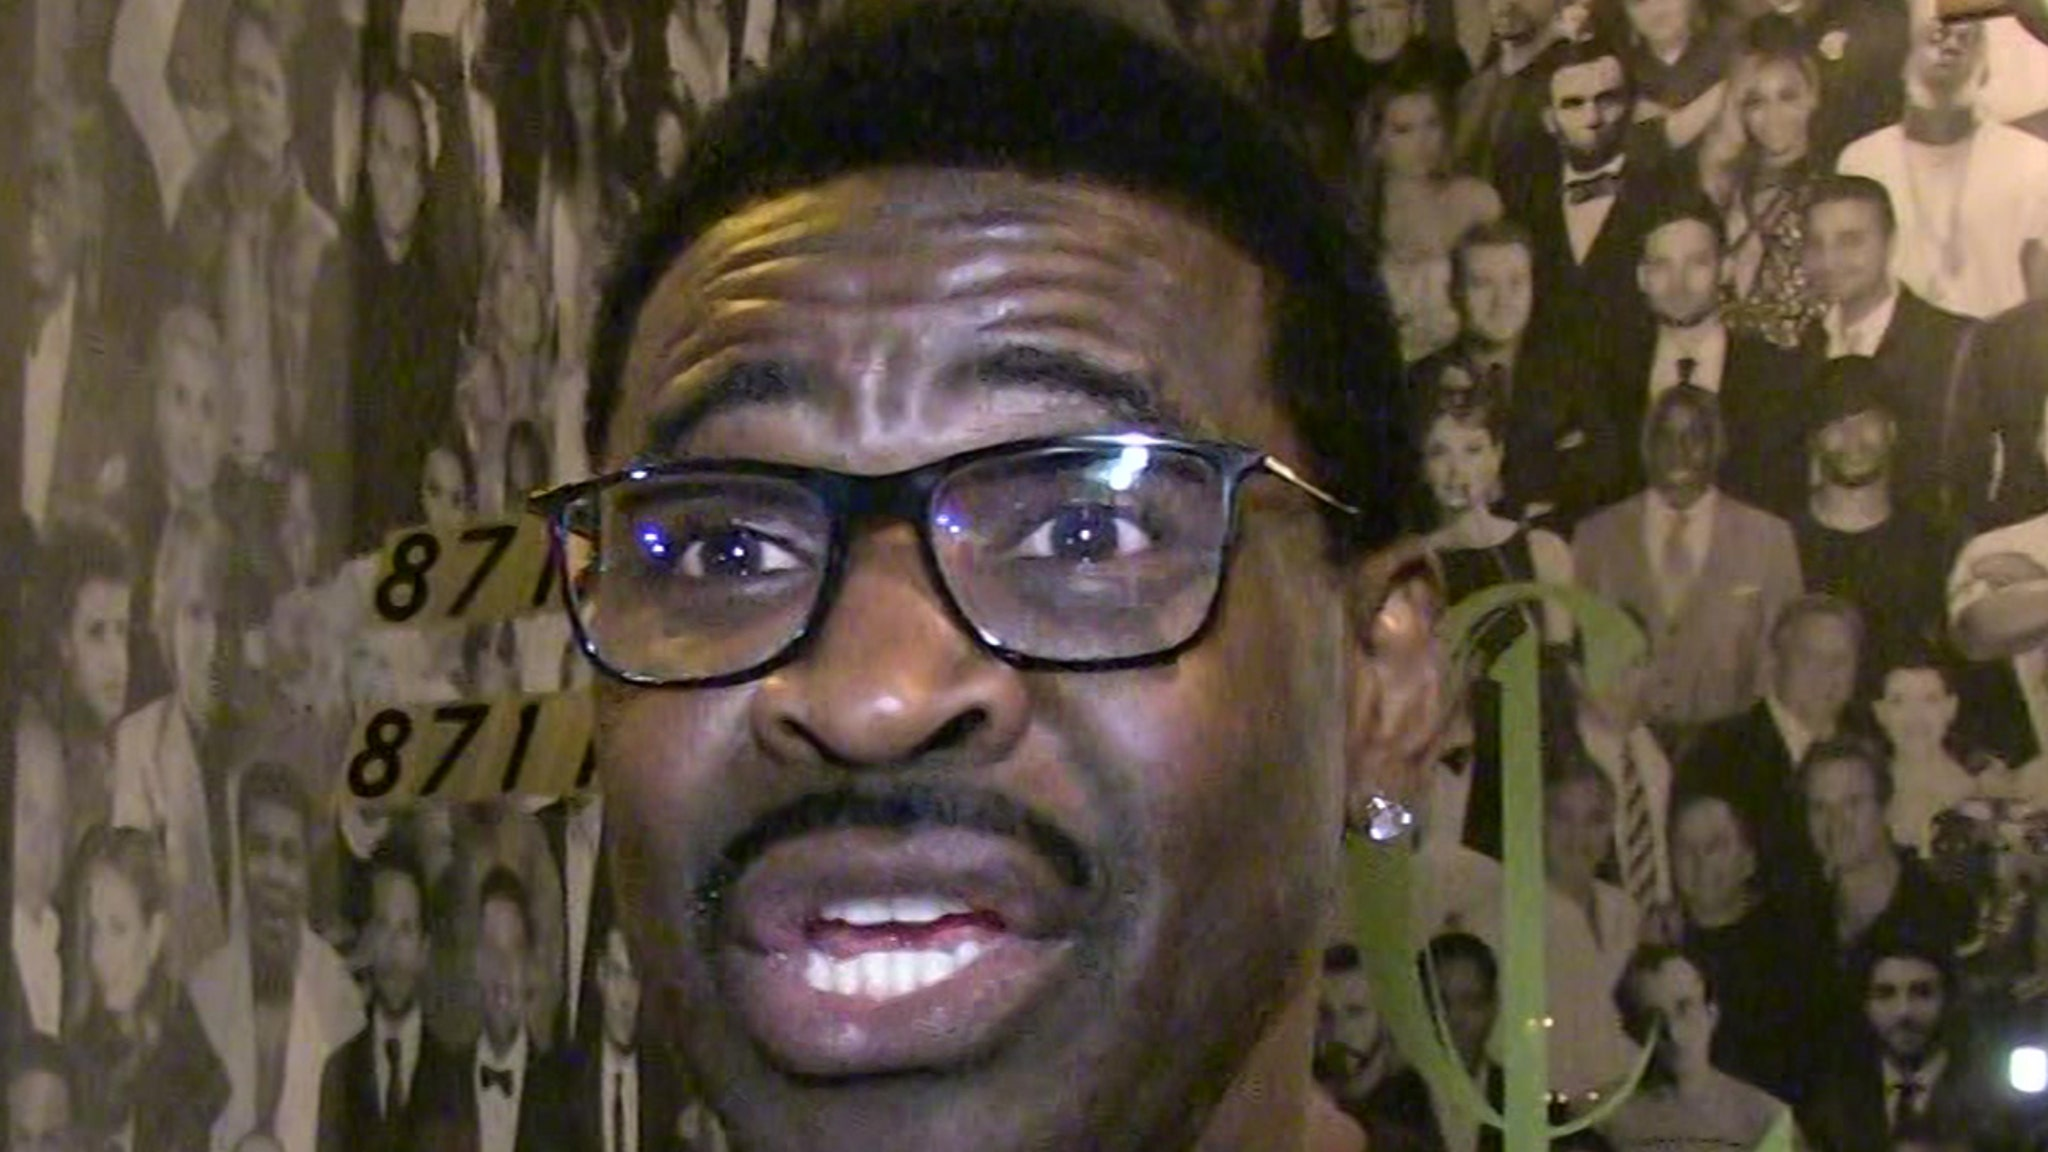 Michael Irvin Rips Cowboys For Low COVID Vaccine Rate, Do You Even Want To Win?!